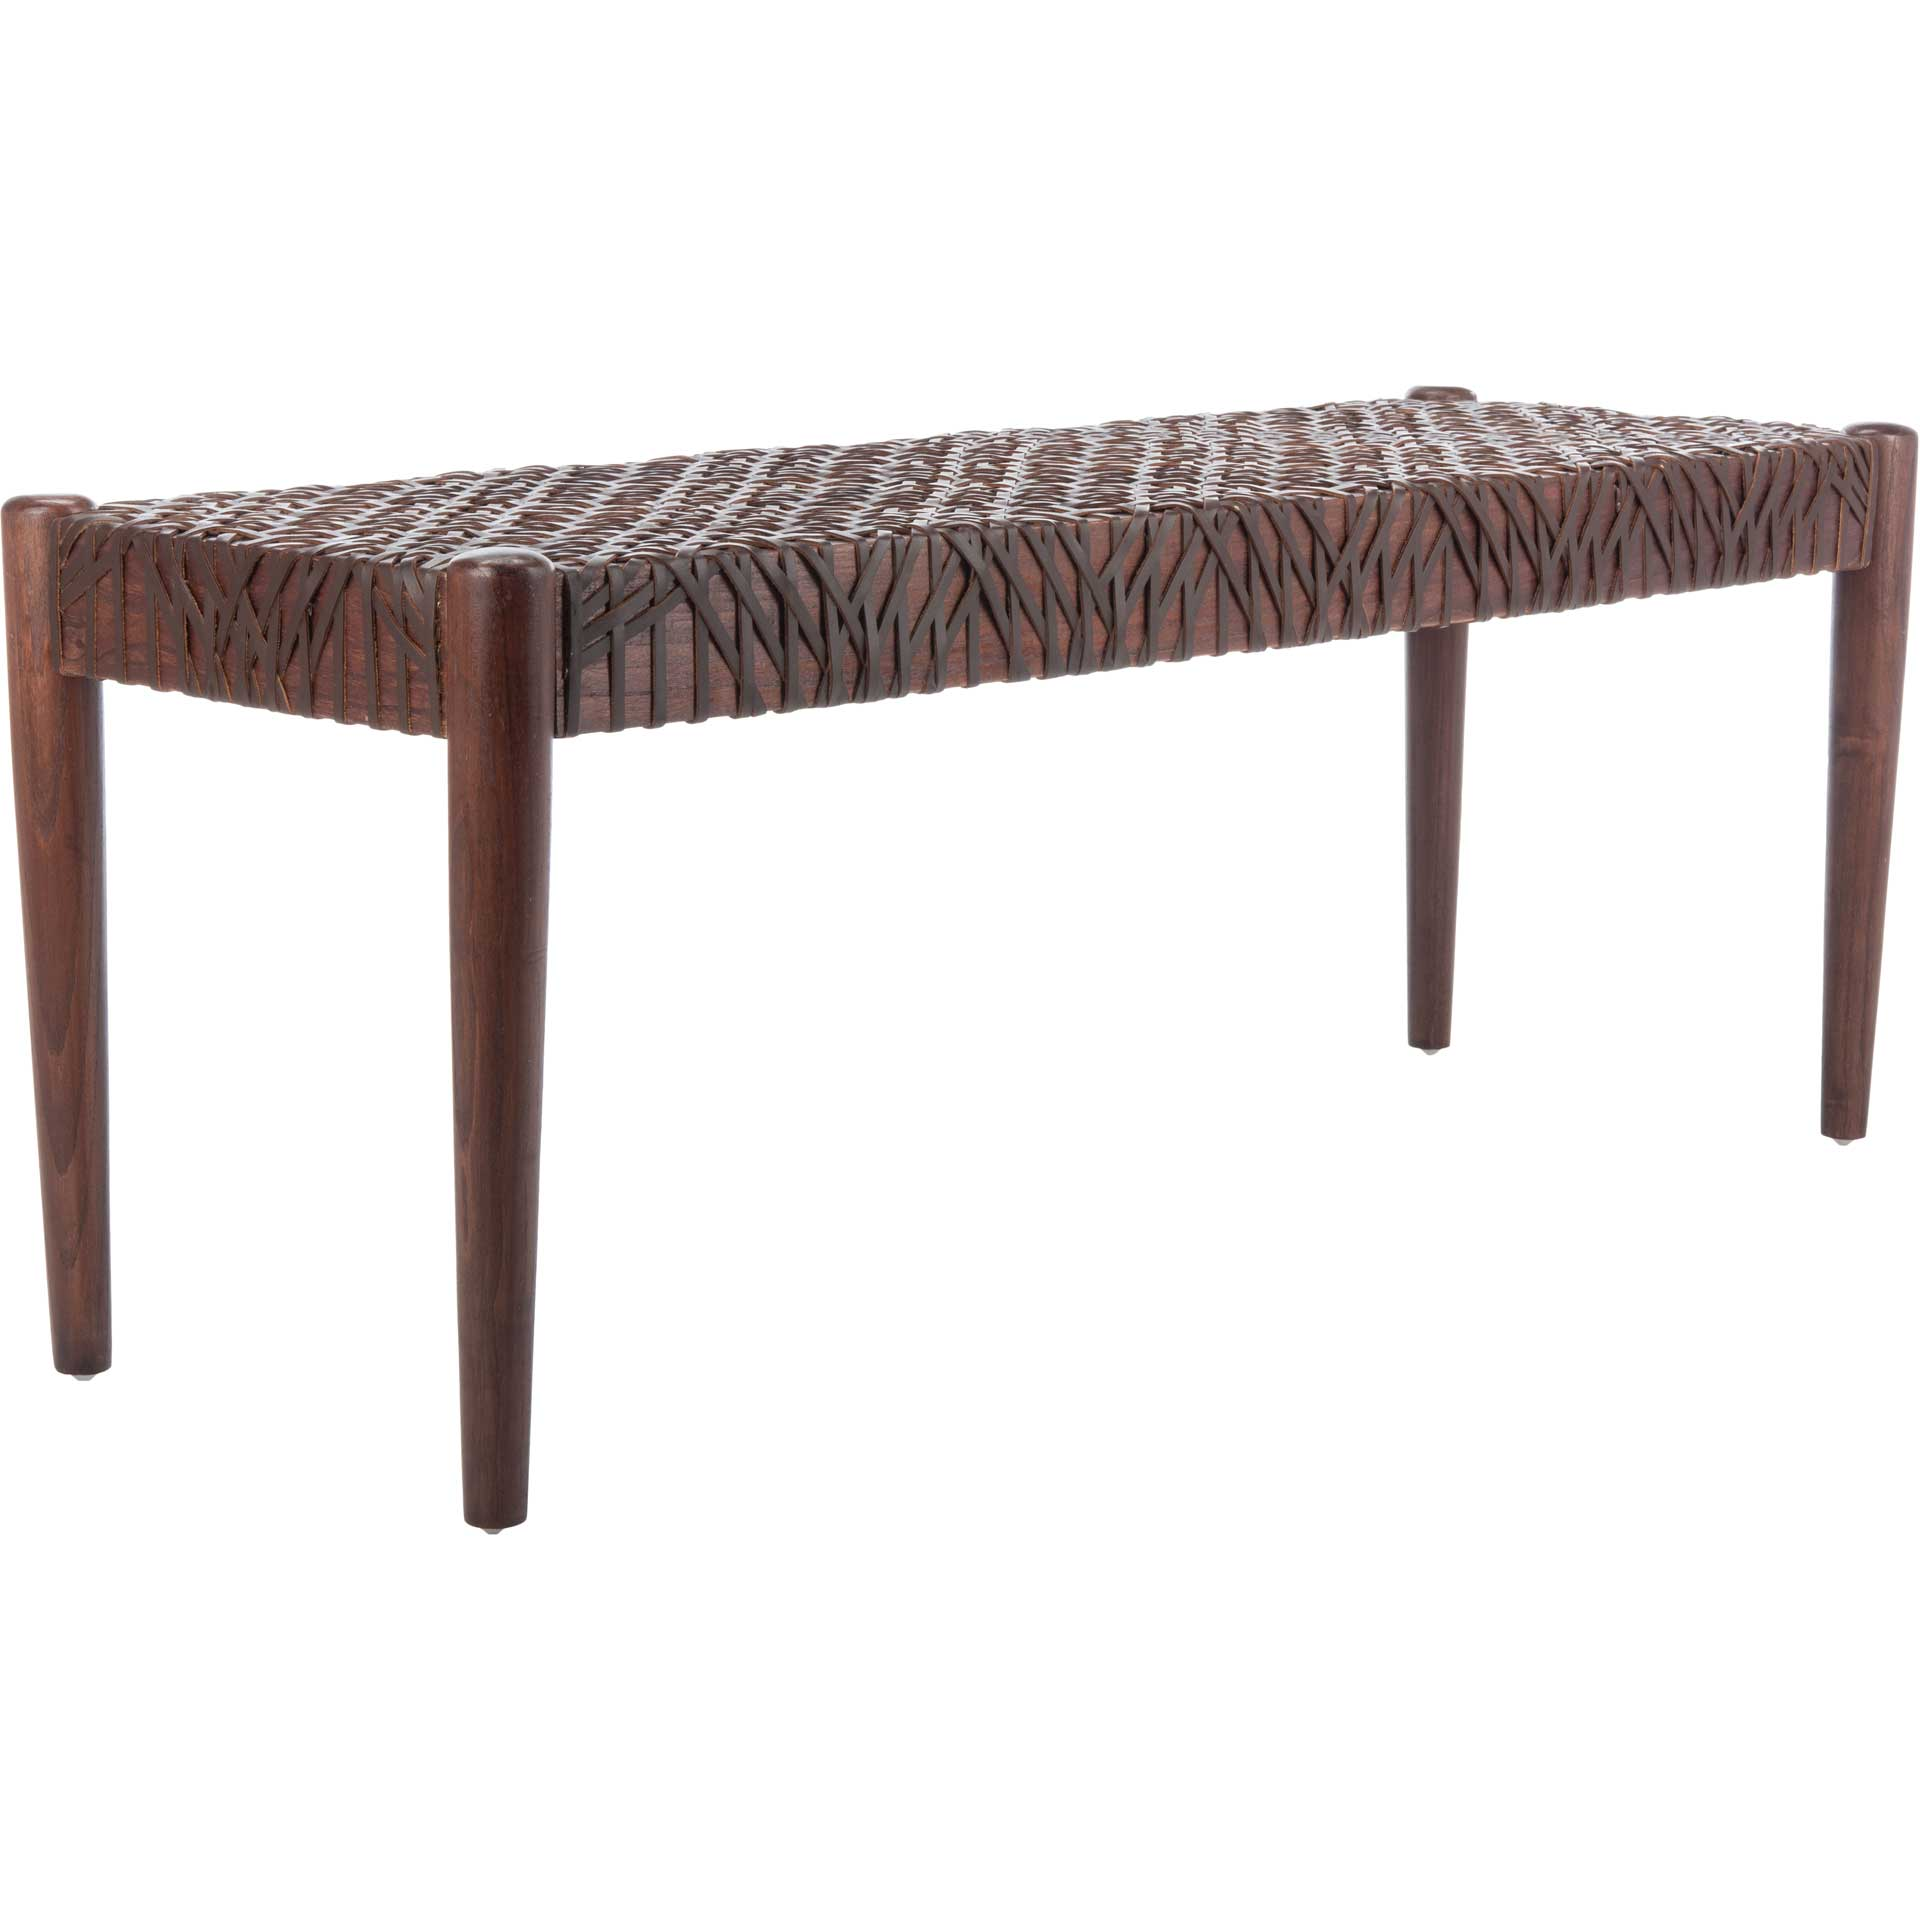 Baize Leather Weave Bench Brown/Brown